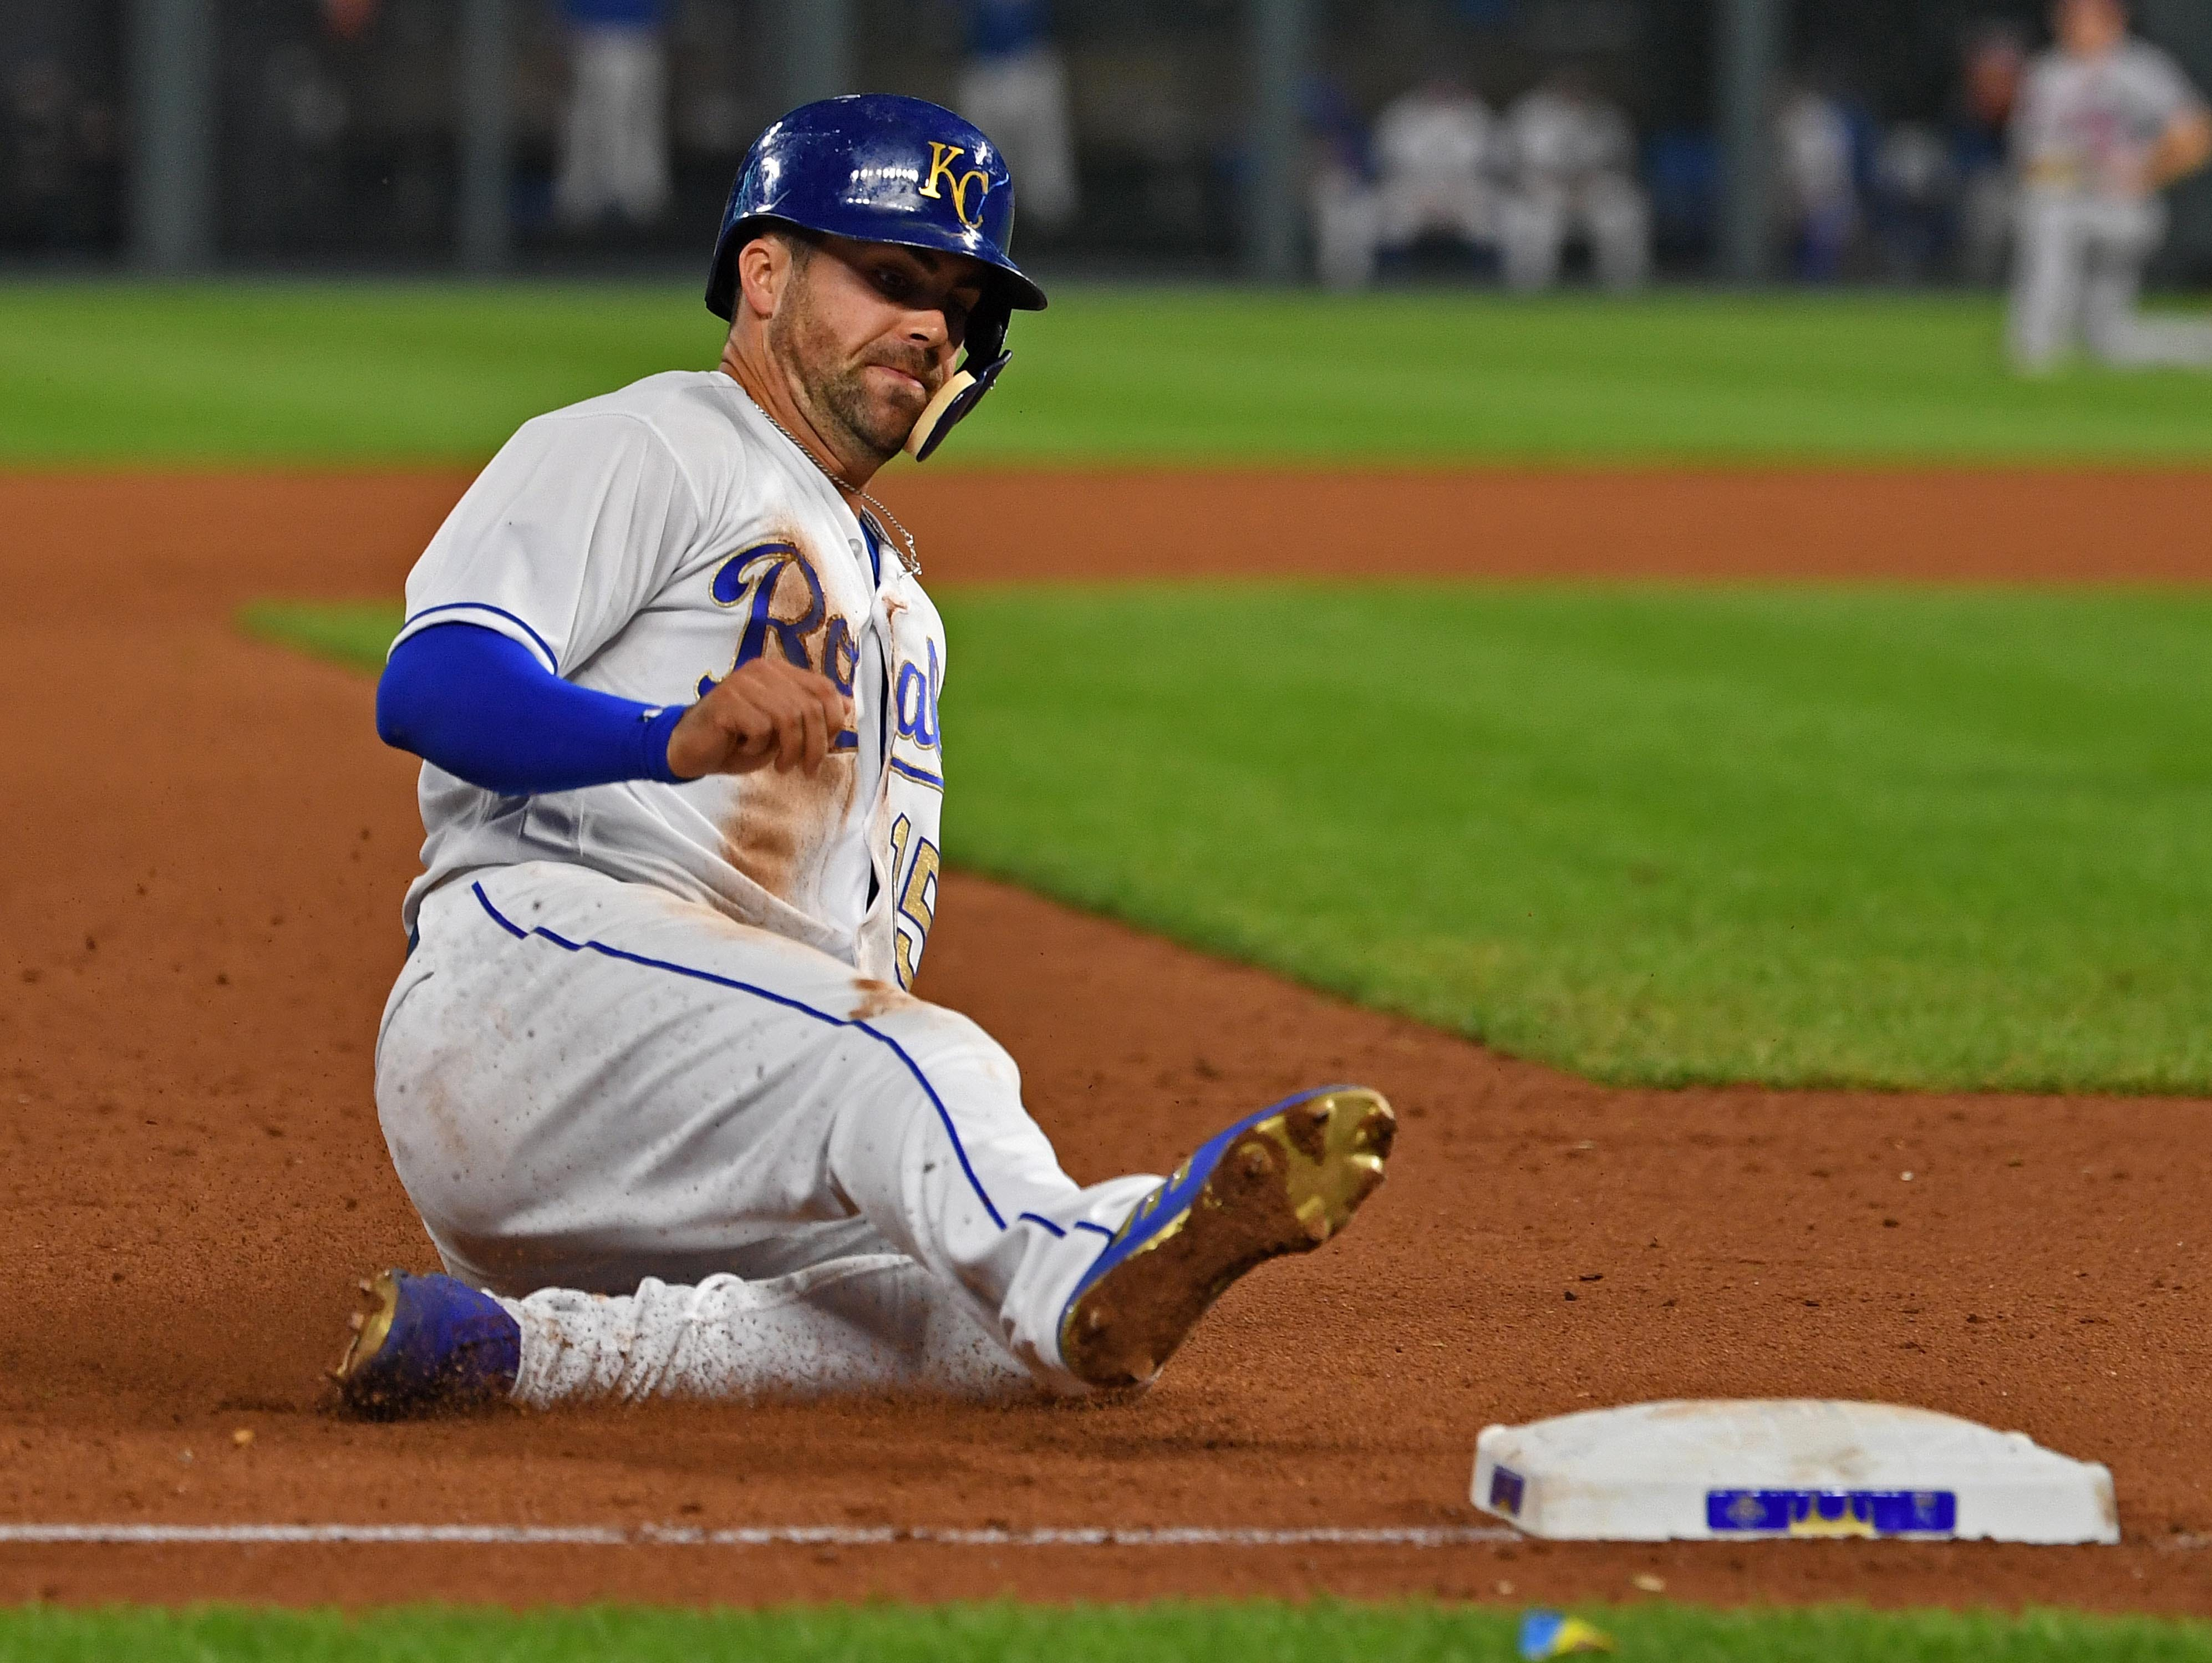 45. Whit Merrifield, Kansas City Royals second baseman.